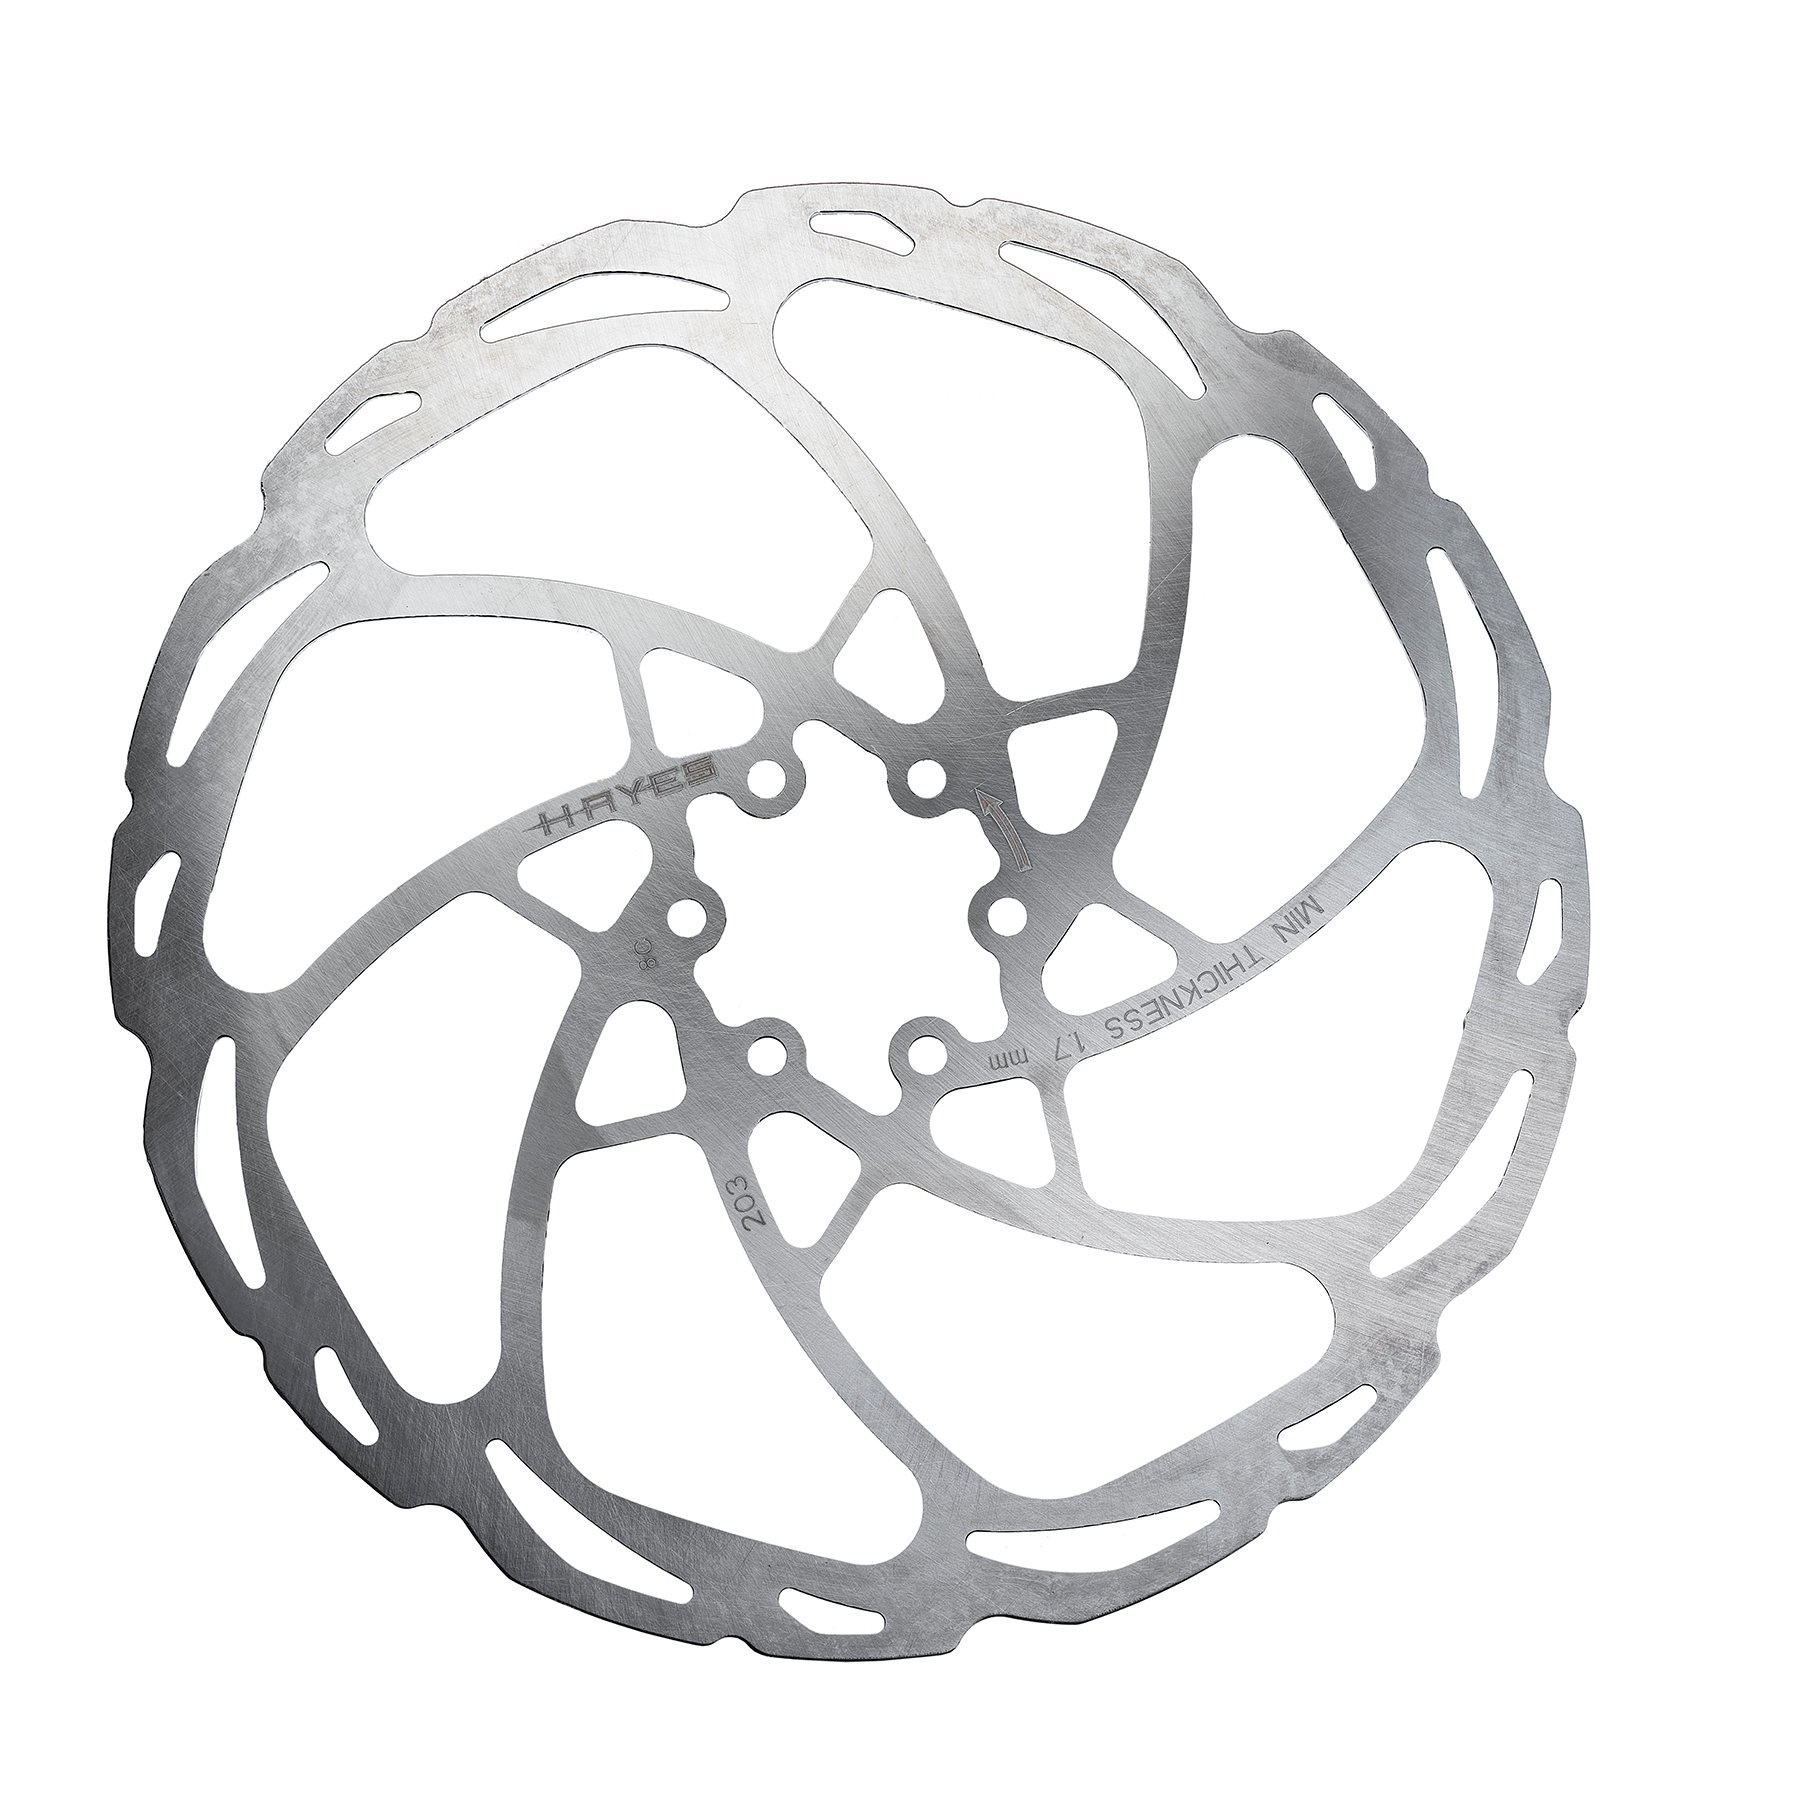 Hayes D-Series Disc Brake Rotor - 203mm, 6-Bolt, Silver-1